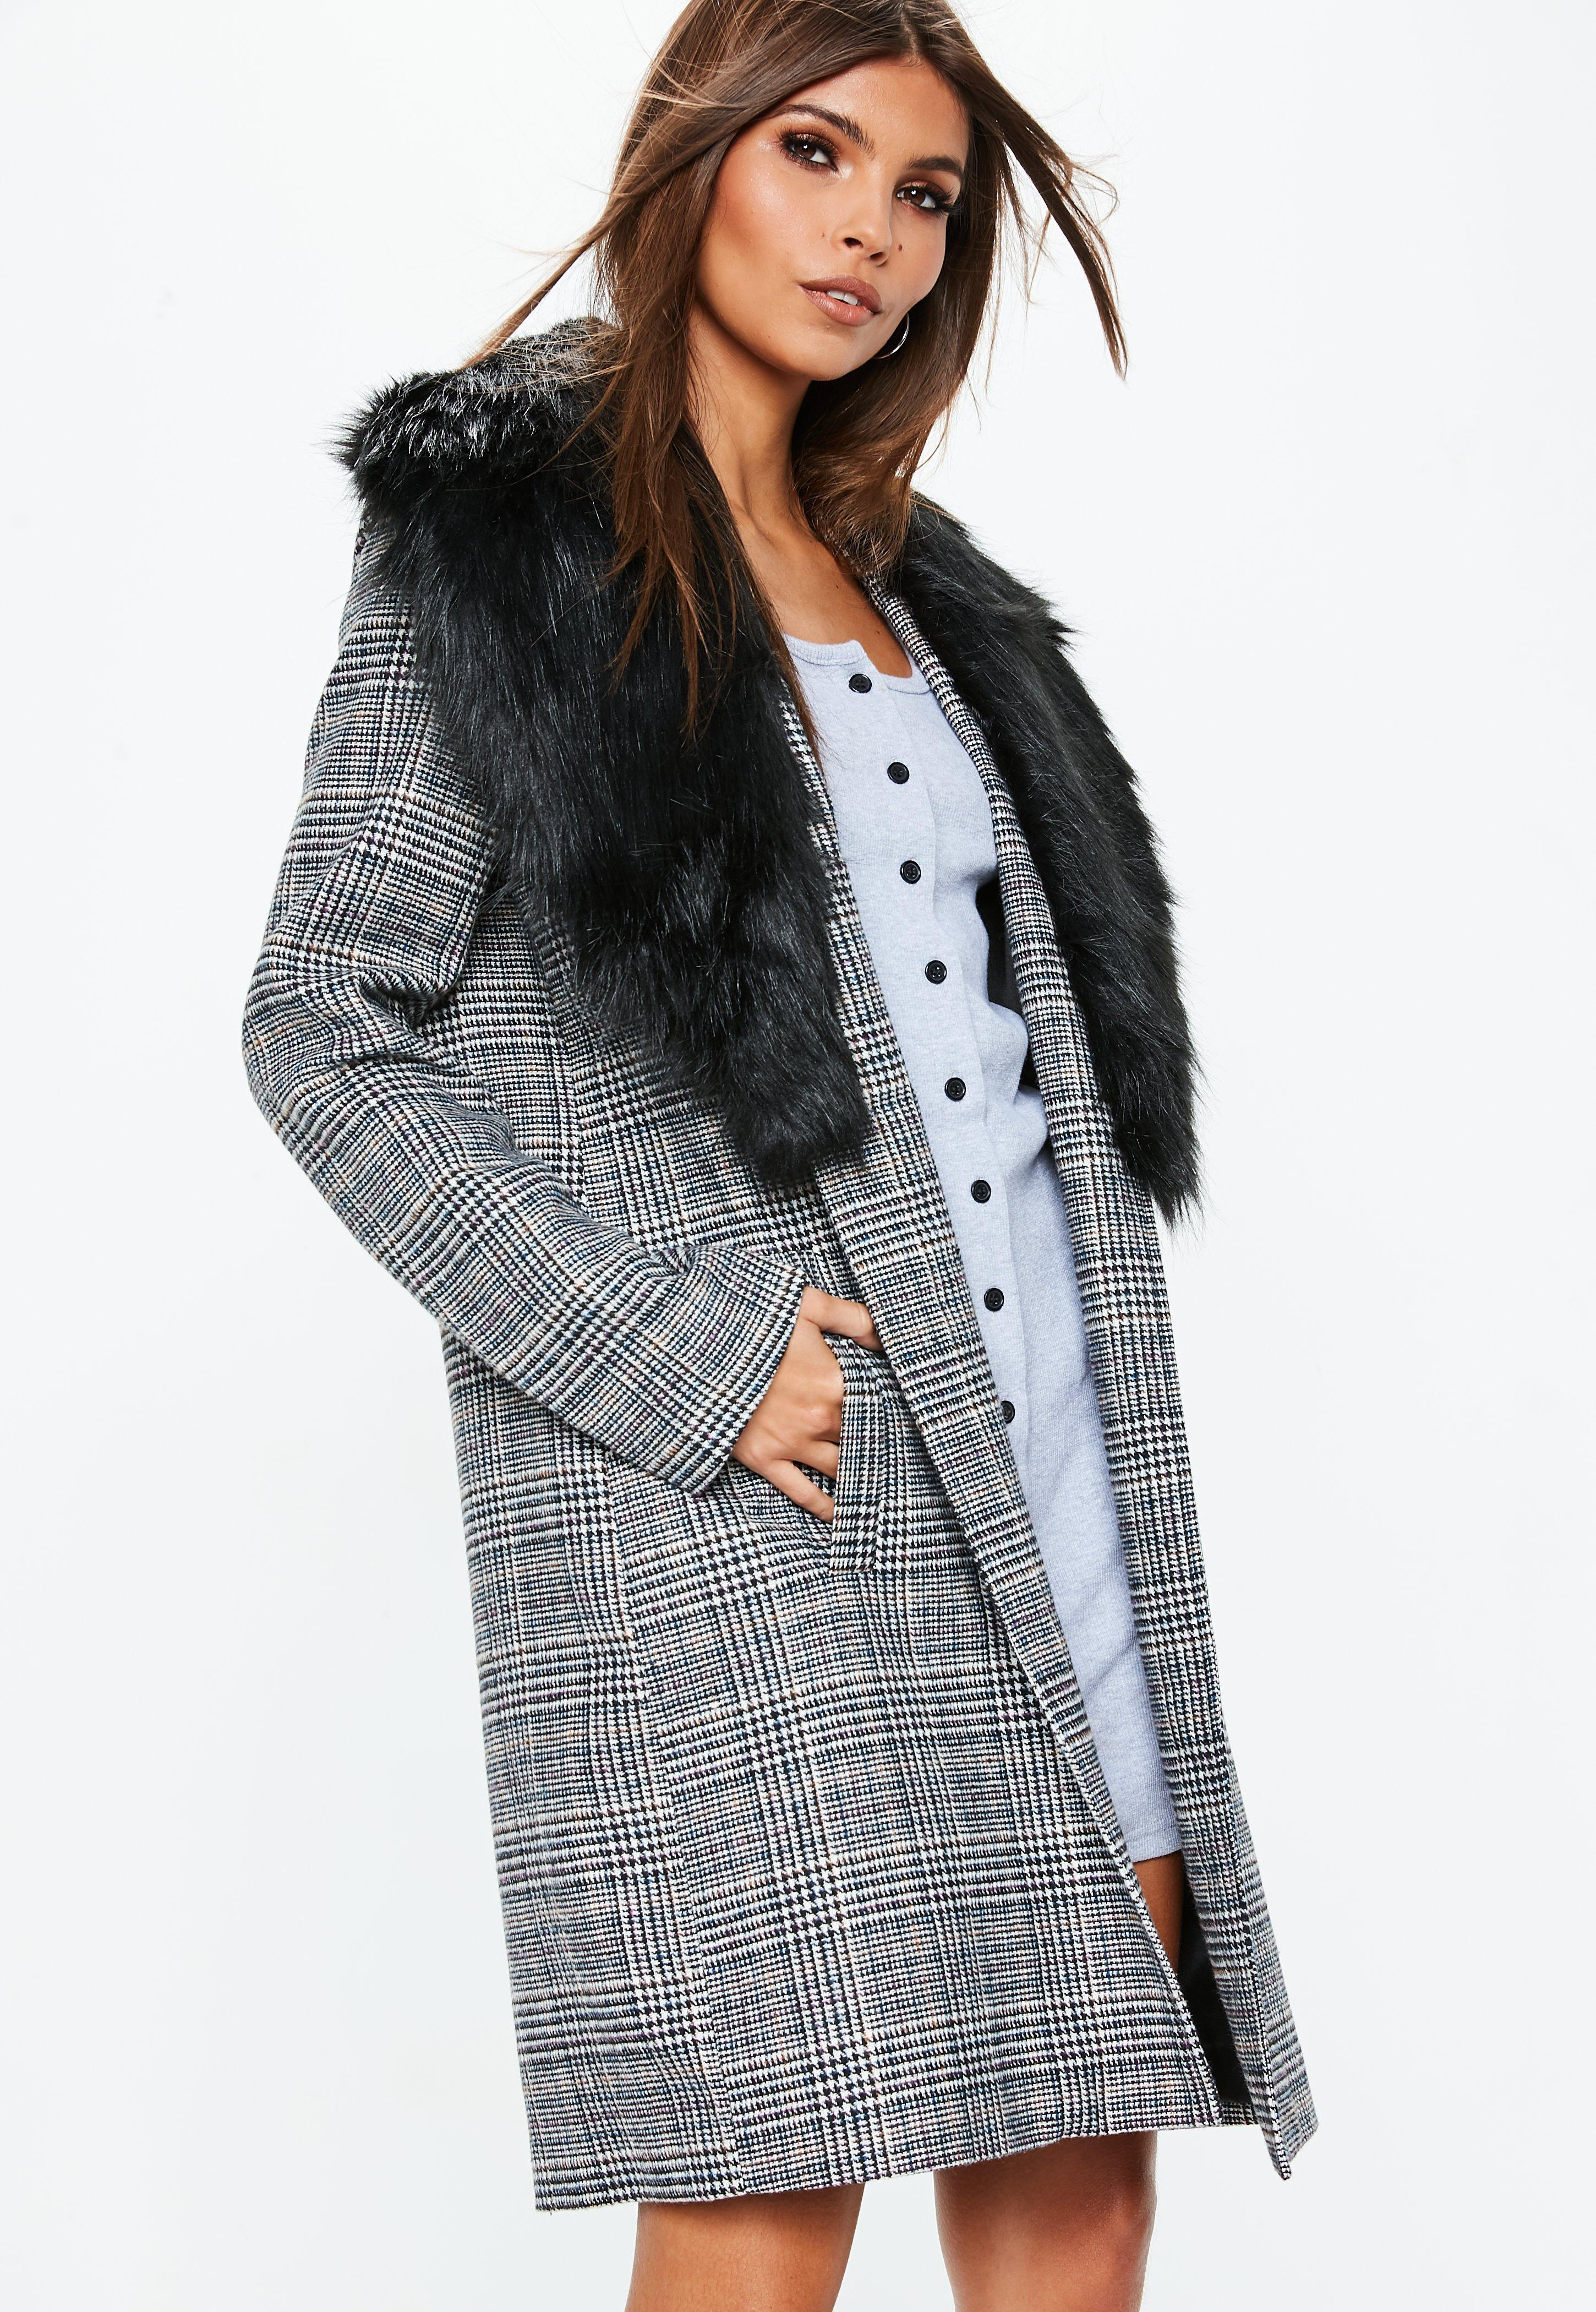 a0219497253e Lyst - Missguided Grey Faux Fur Collar Check Coat in Gray - Save 50.0%